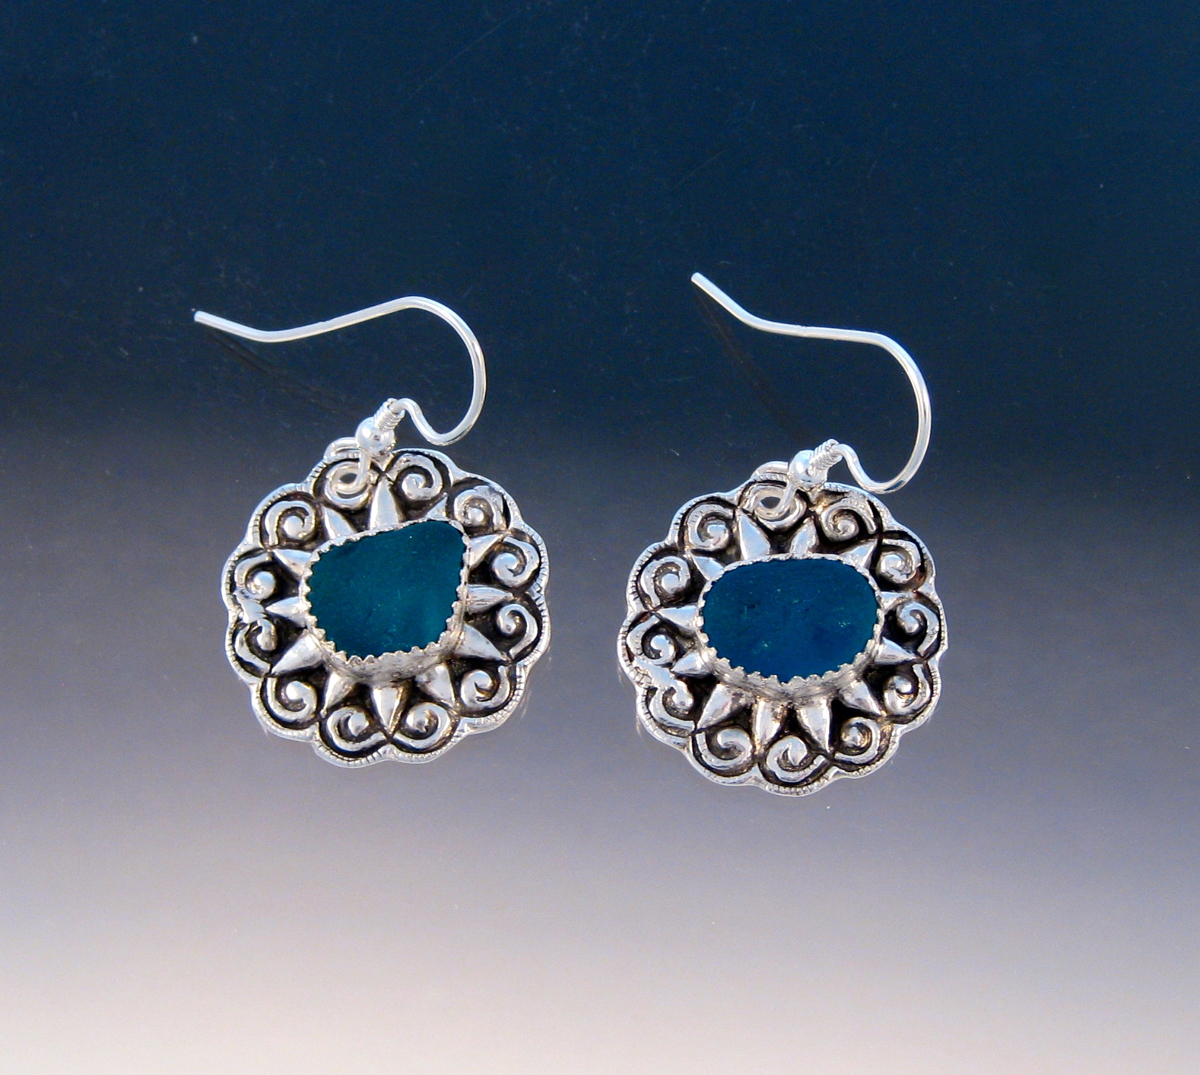 E998 - Teal vintage button earrings (large view)